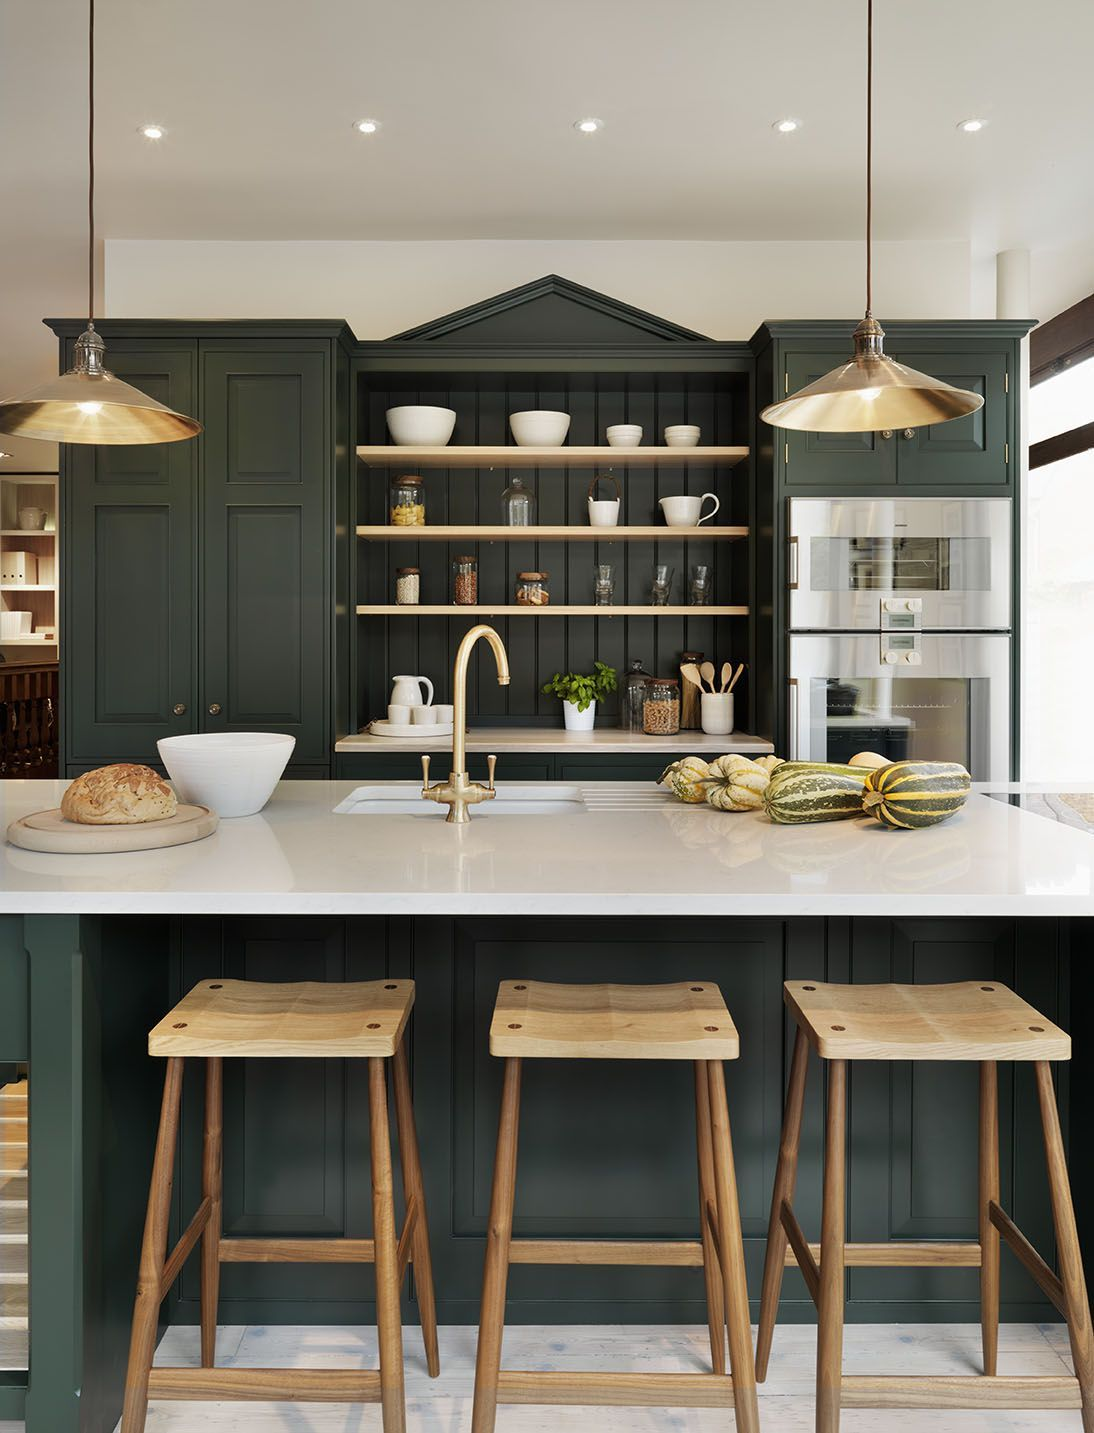 Hunter Green Kitchen Cabinets With A Brass Sink Faucet Pendant